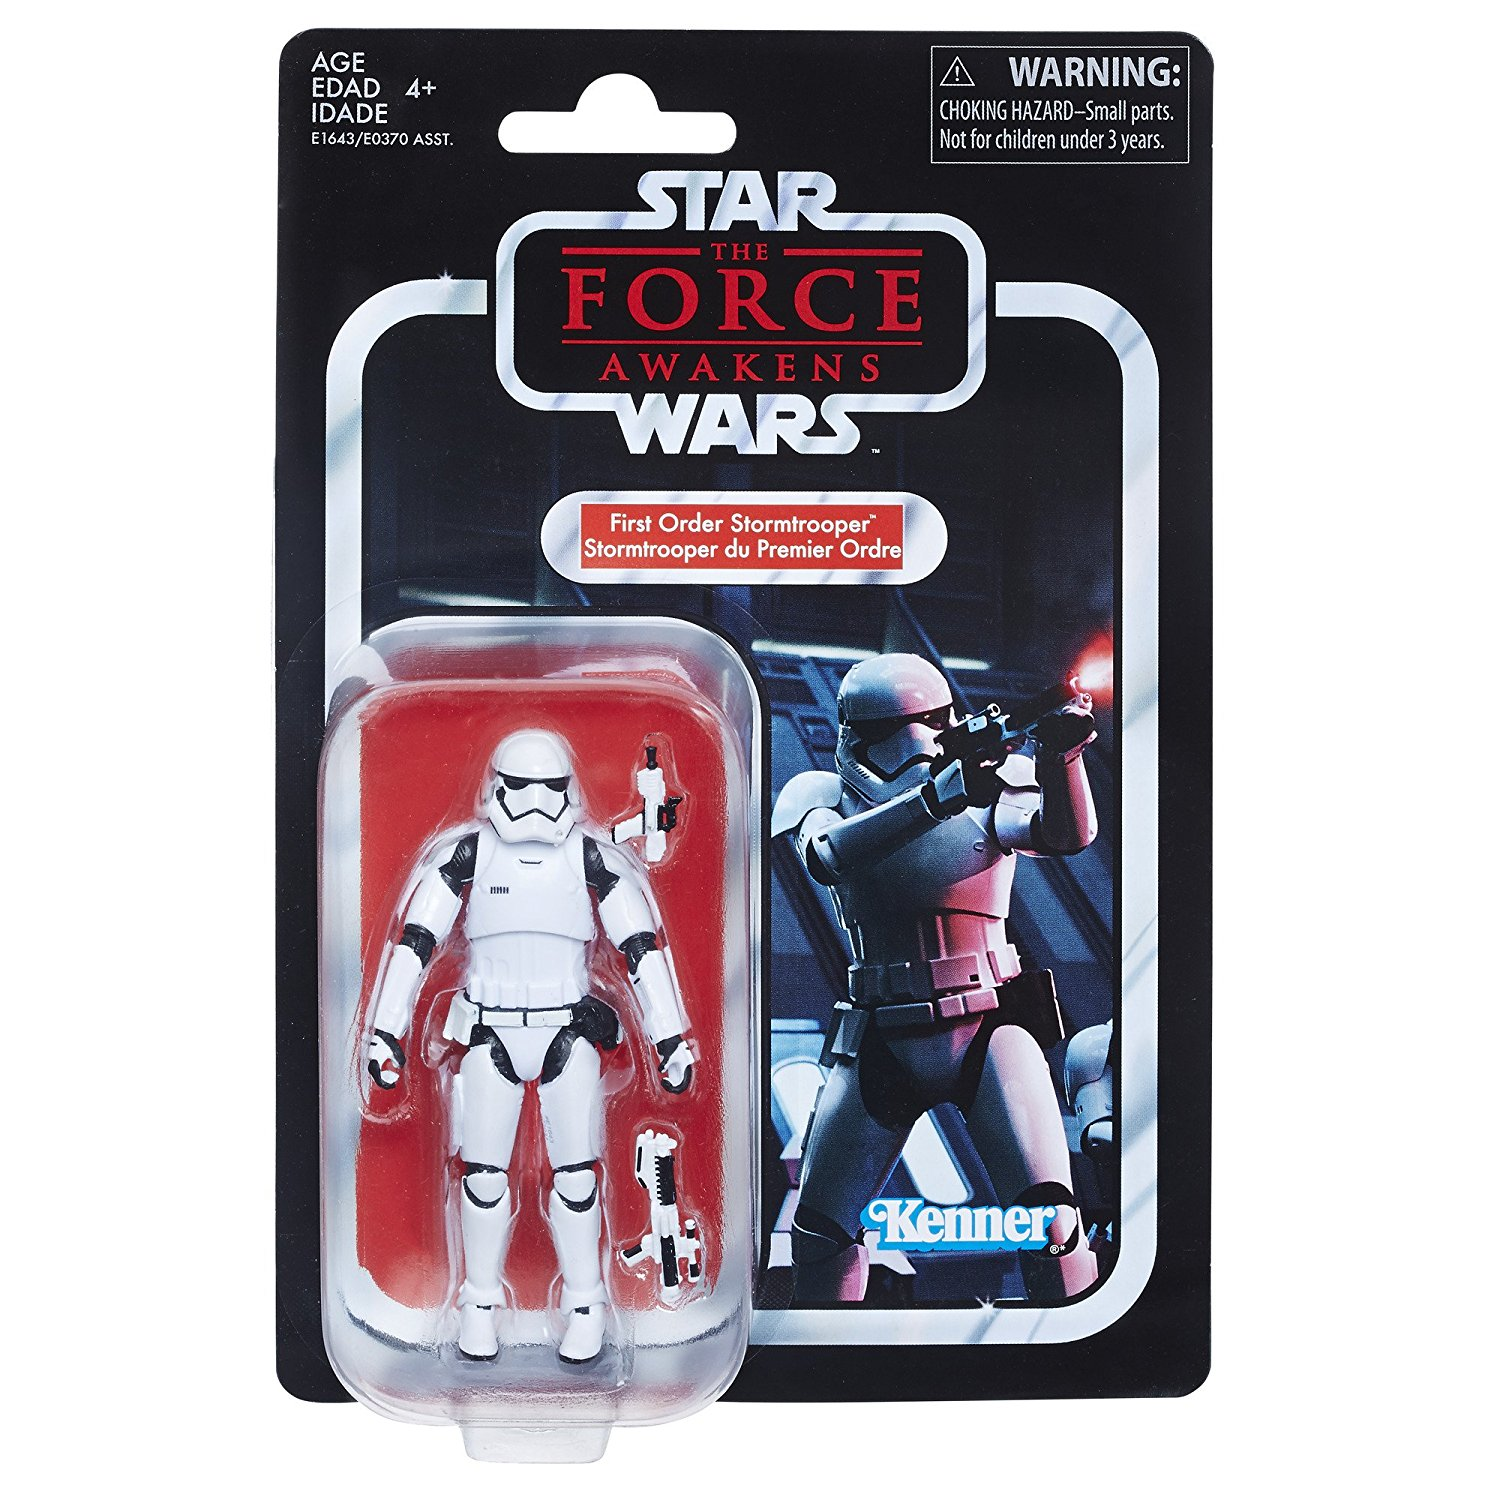 Star Wars The Vintage Collection First Order Stormtrooper 3.75″ Figure Now $6 On Amazon